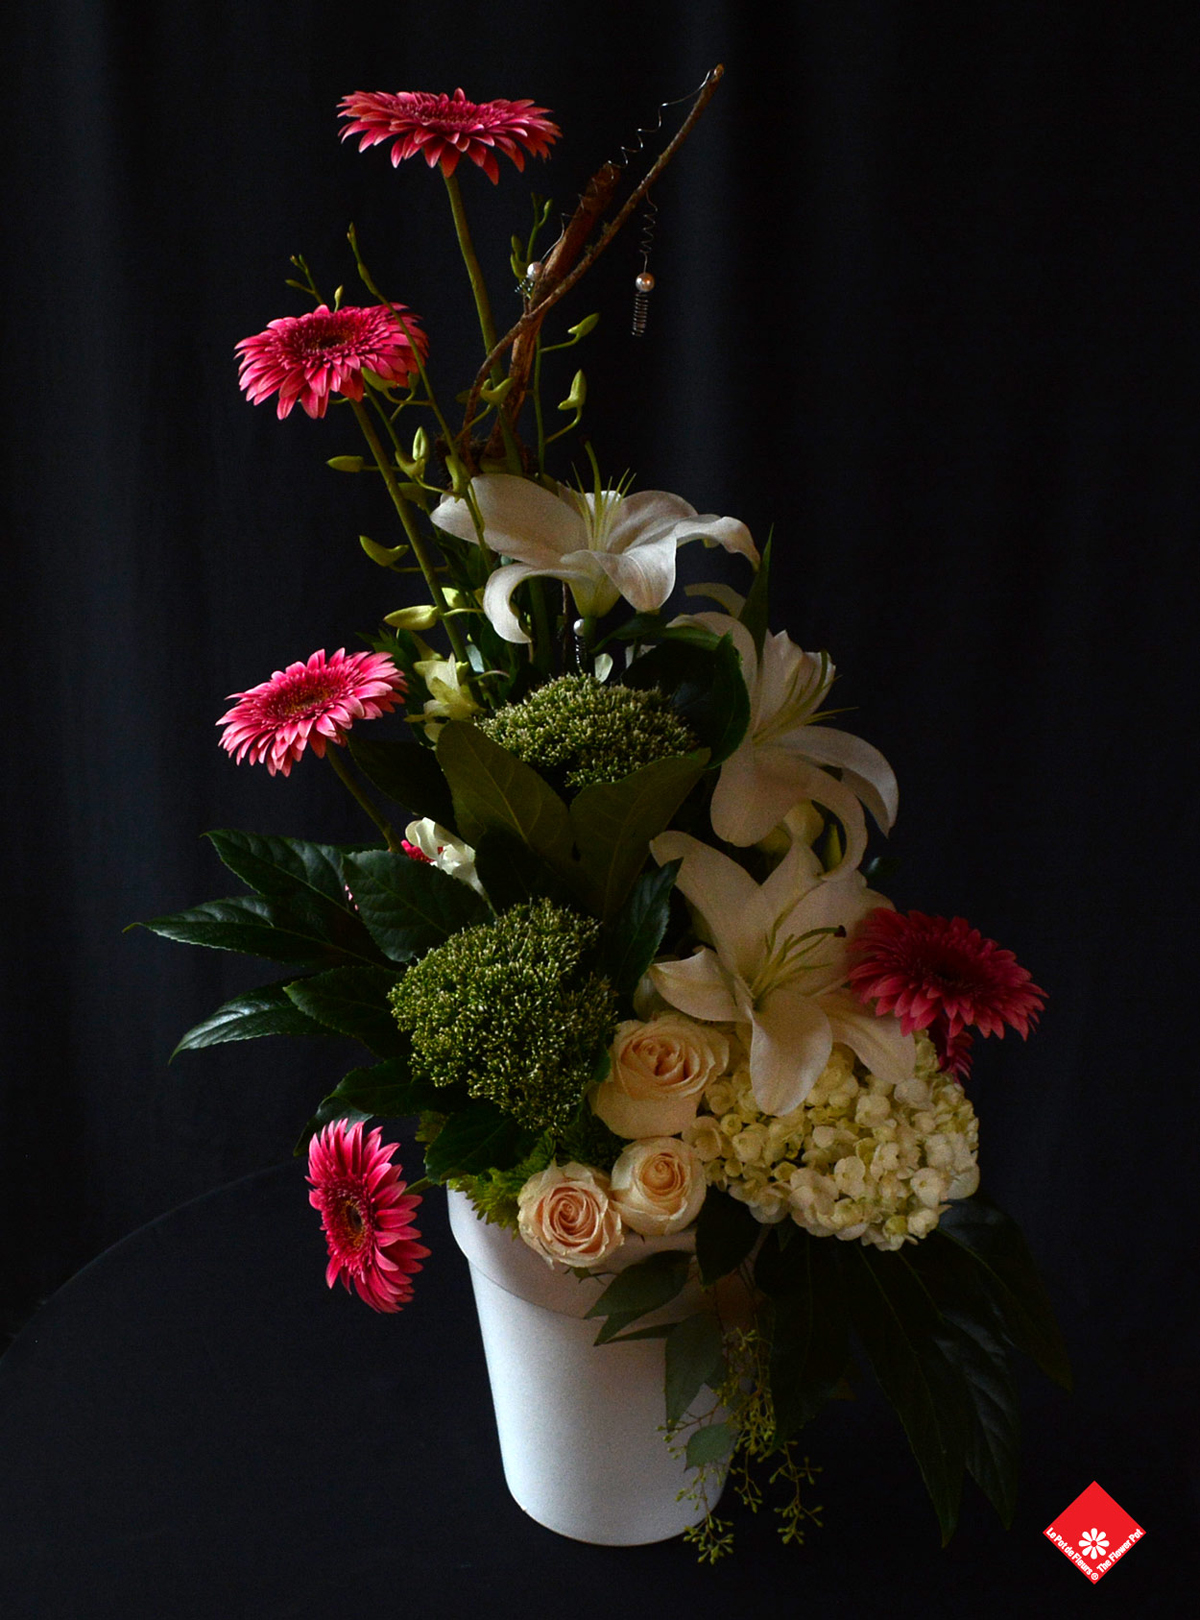 We made this colourful flower arrangement for a Private Birthday Party at the Gault Hotel.